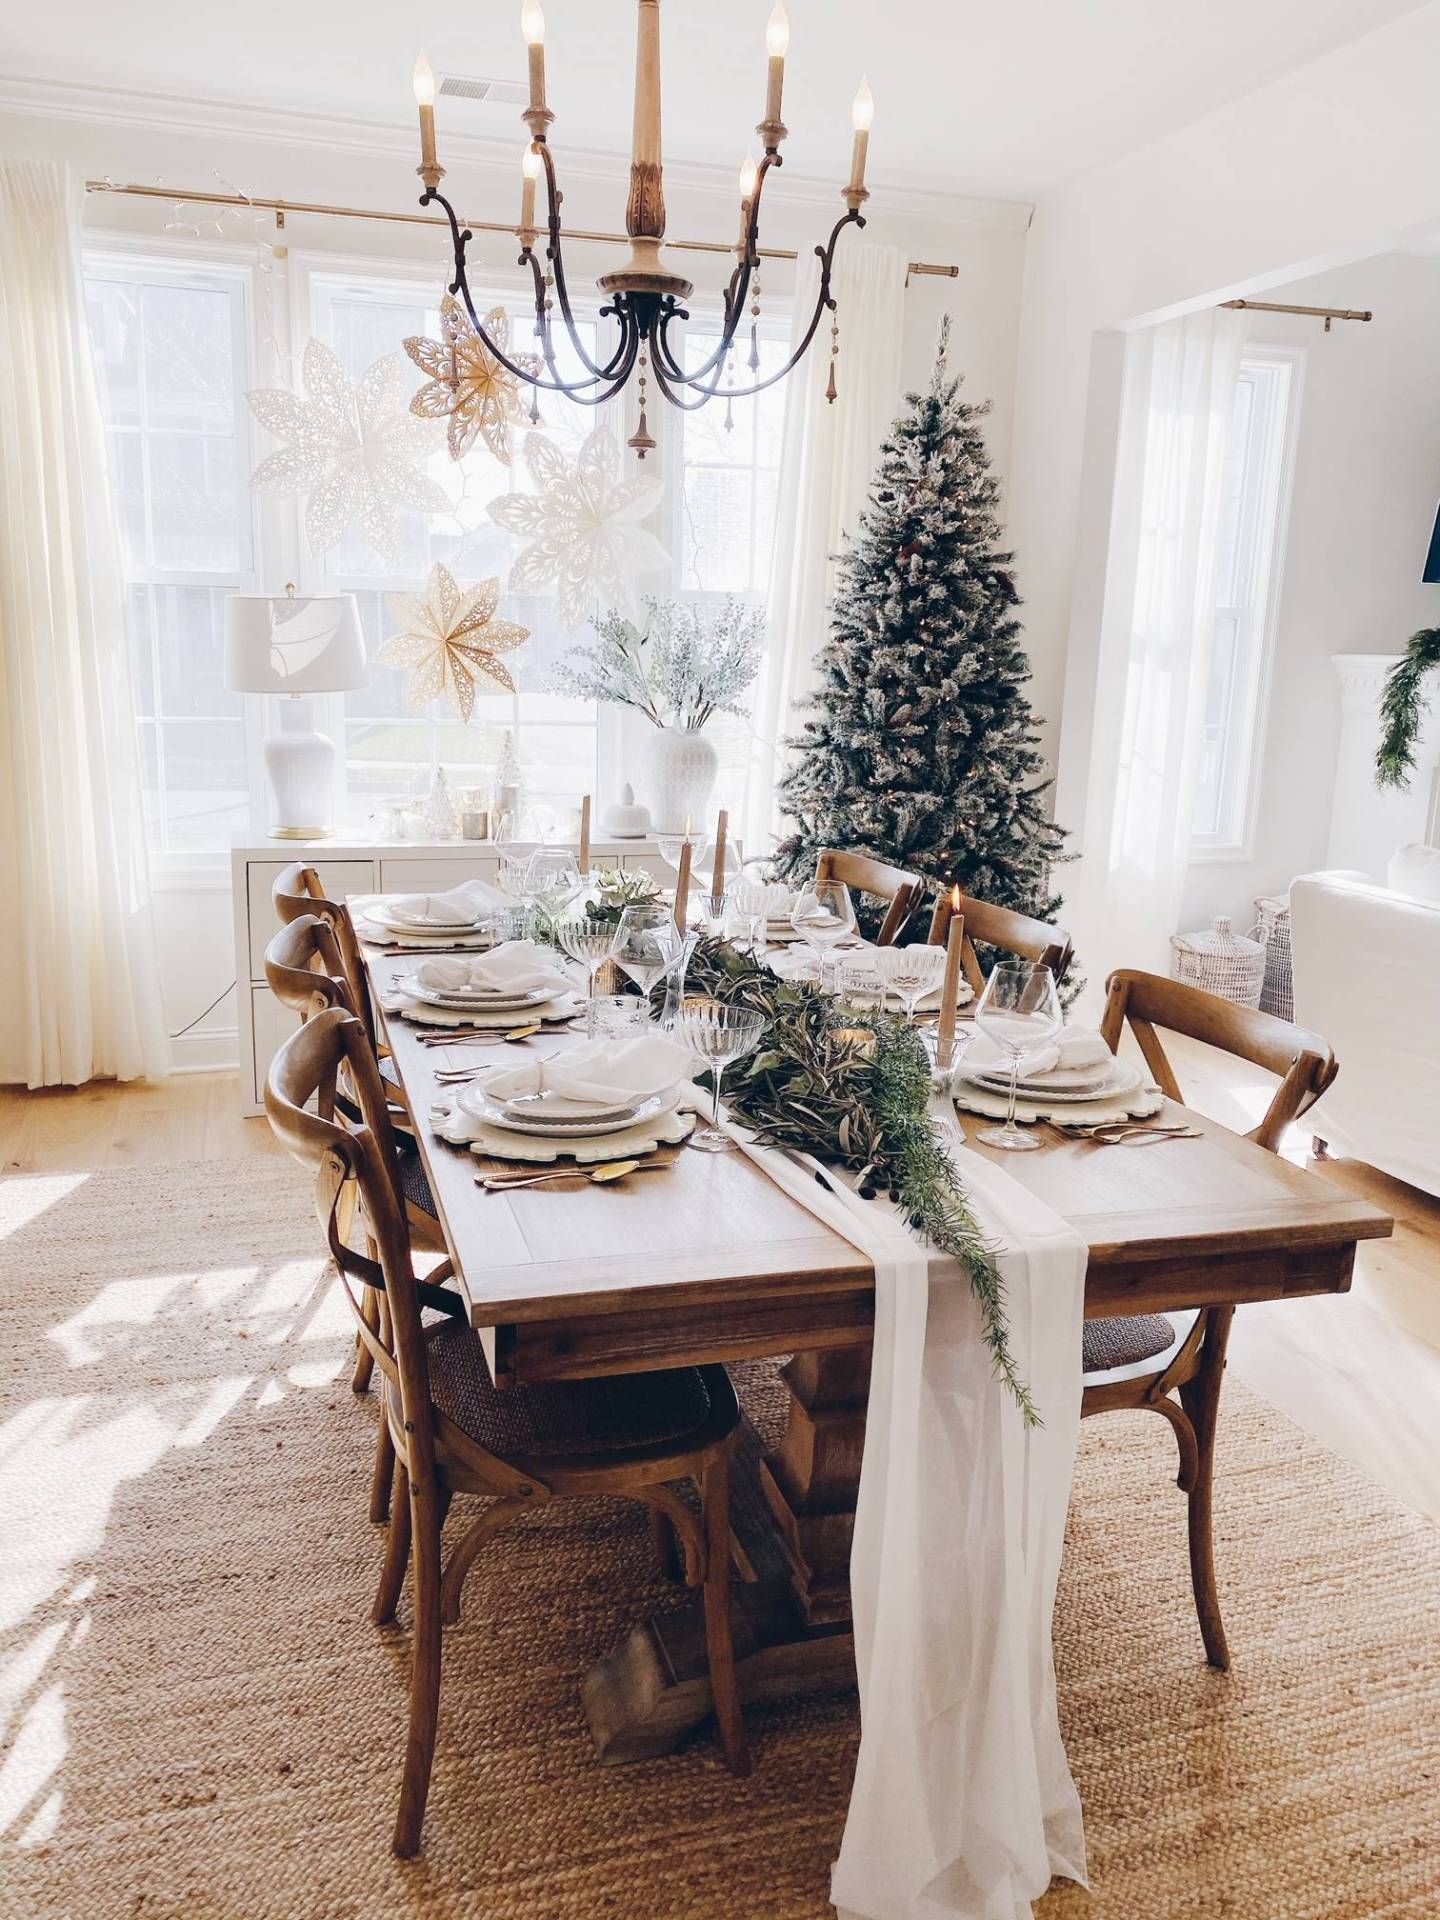 How to Create a Simple Christmas Tablescape #xmastabledecorations